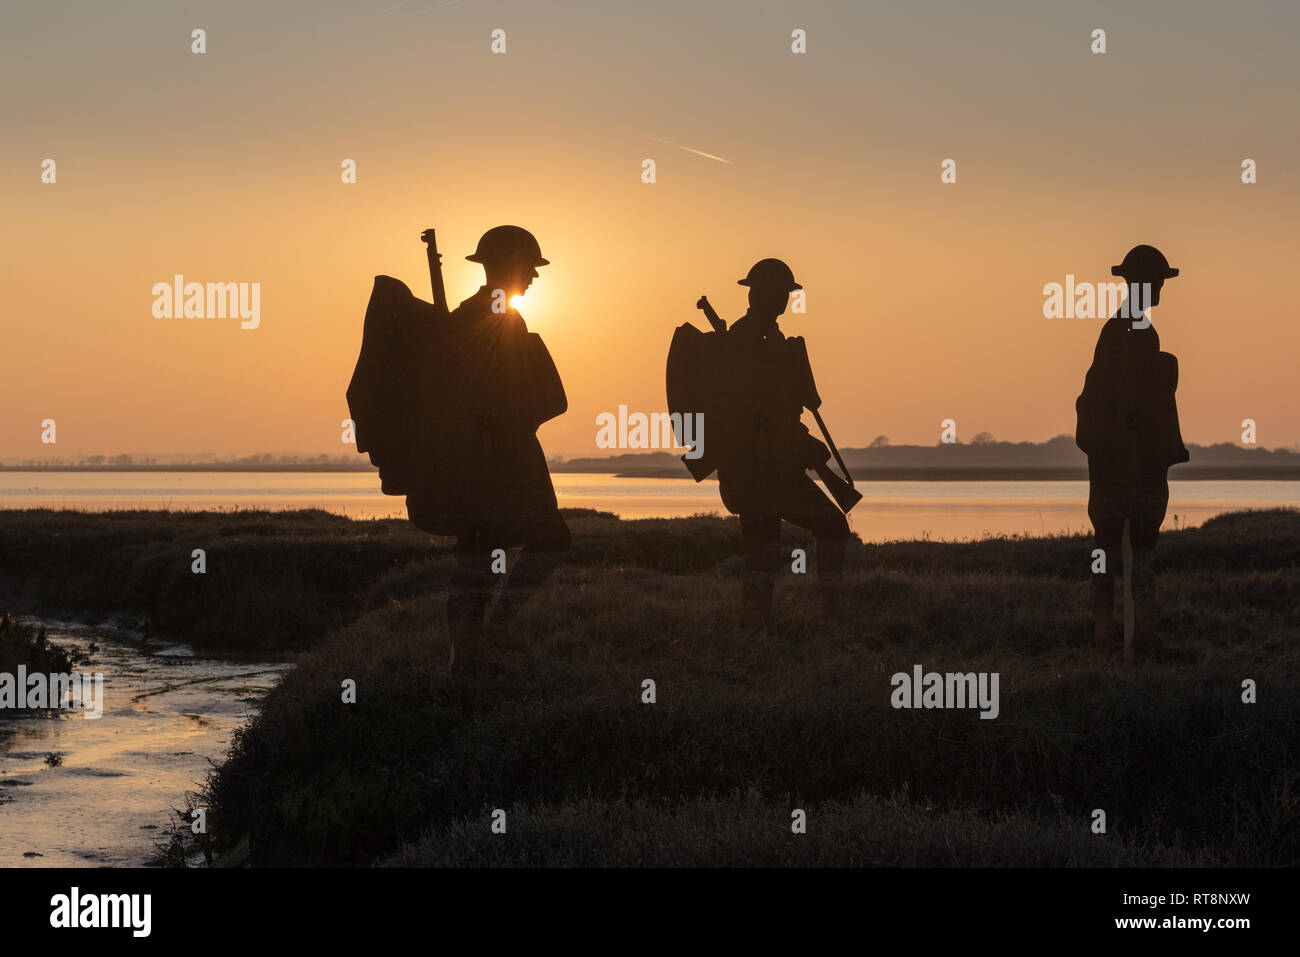 Strood, Mersea Island, Essex, UK, 27 February 2019. Mersea Island silhouettes: 51 metal cutouts recall local men who died in the Army and Navy in WWI. - Stock Image